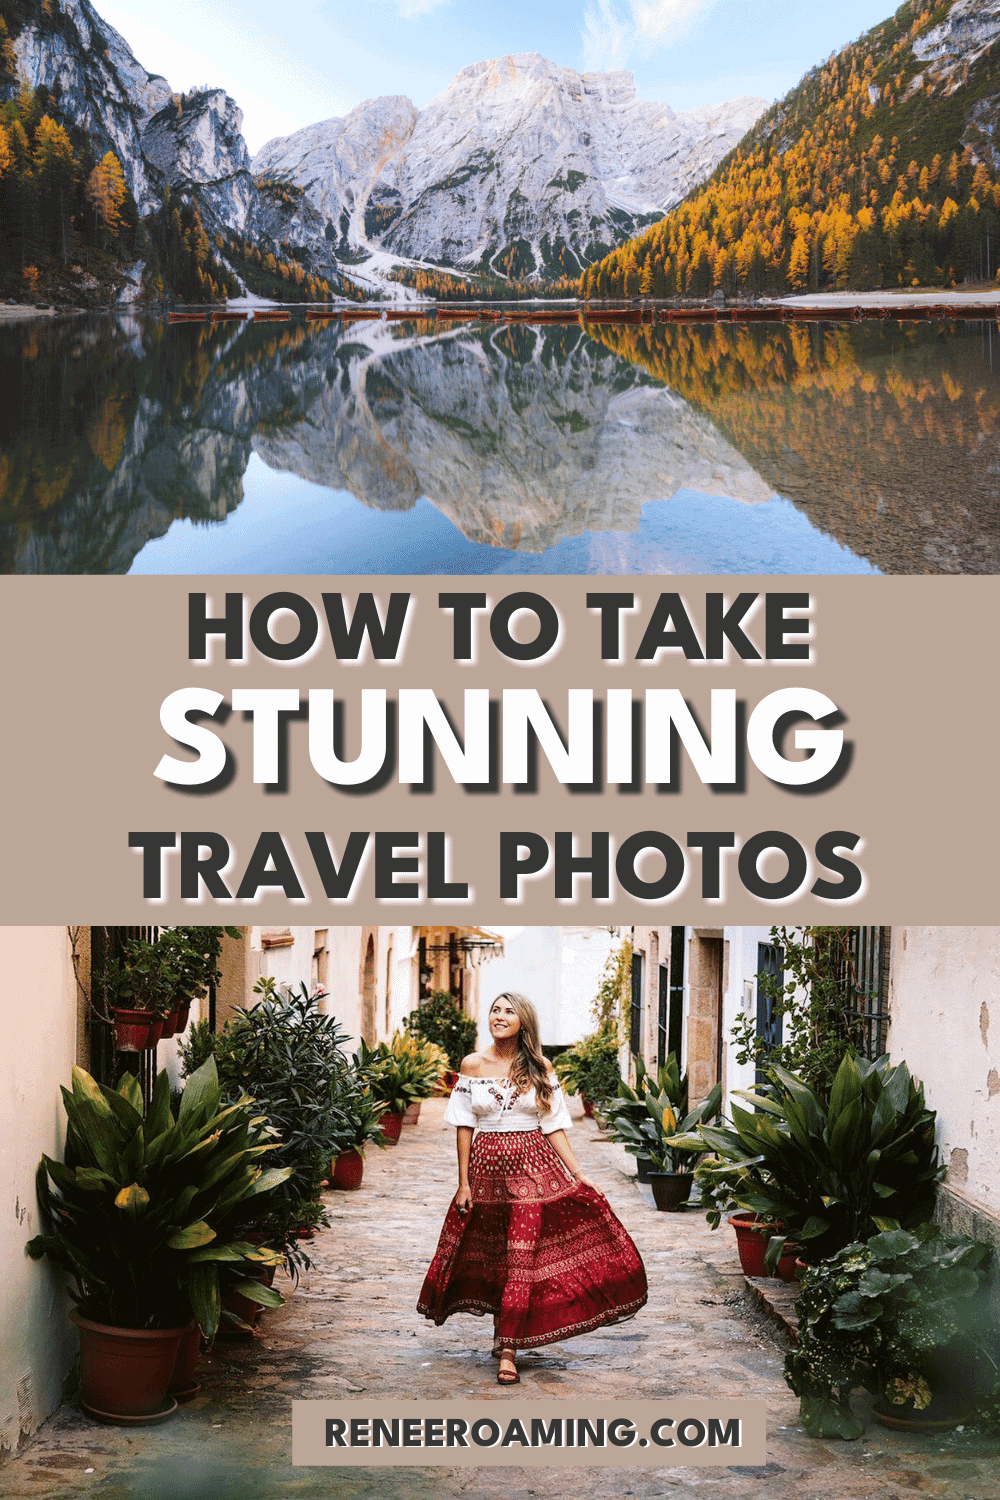 How To Take Better Travel Photos: Expert Tips and Tricks